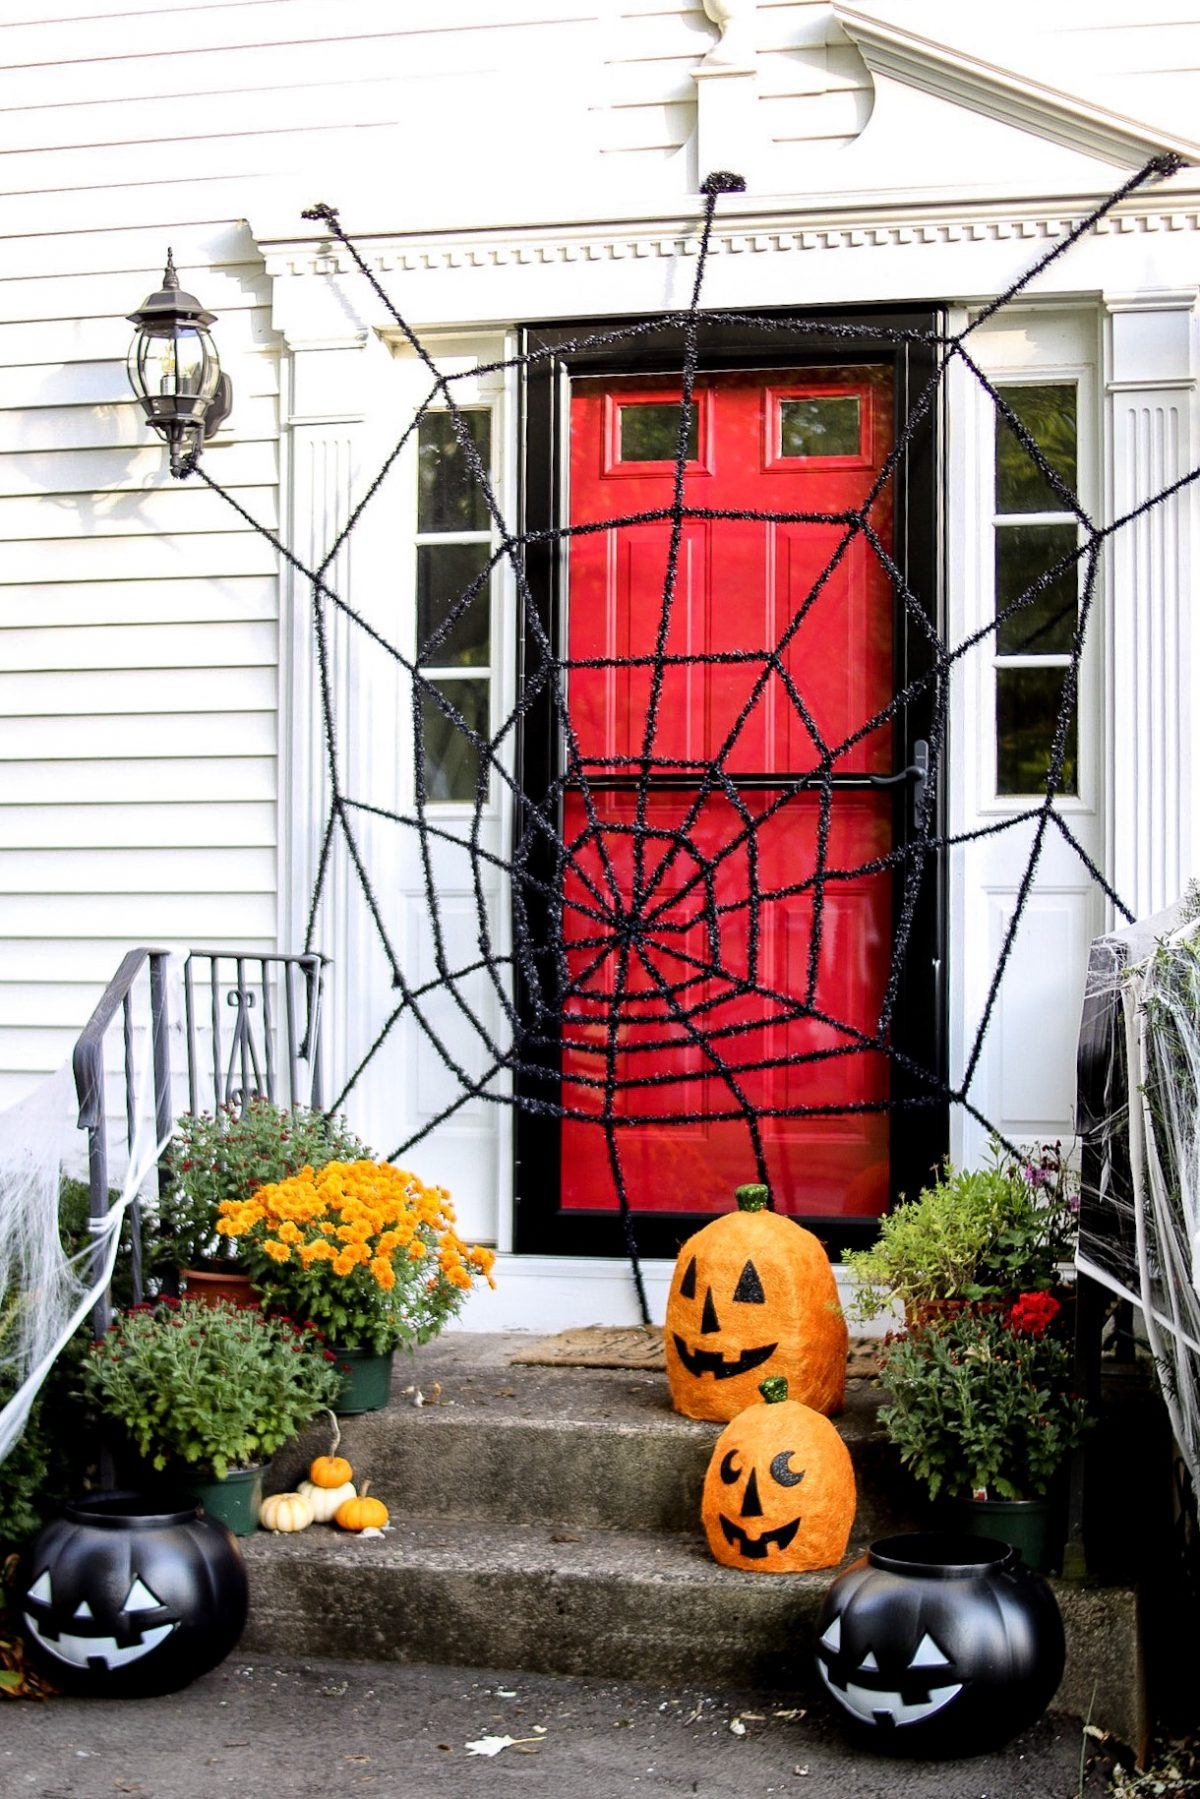 Front Porch Decorated for Halloween - Fake Spider web over front door - light up pumpkins and mums - White Colonial Home with Red Door by Caitlin Houston